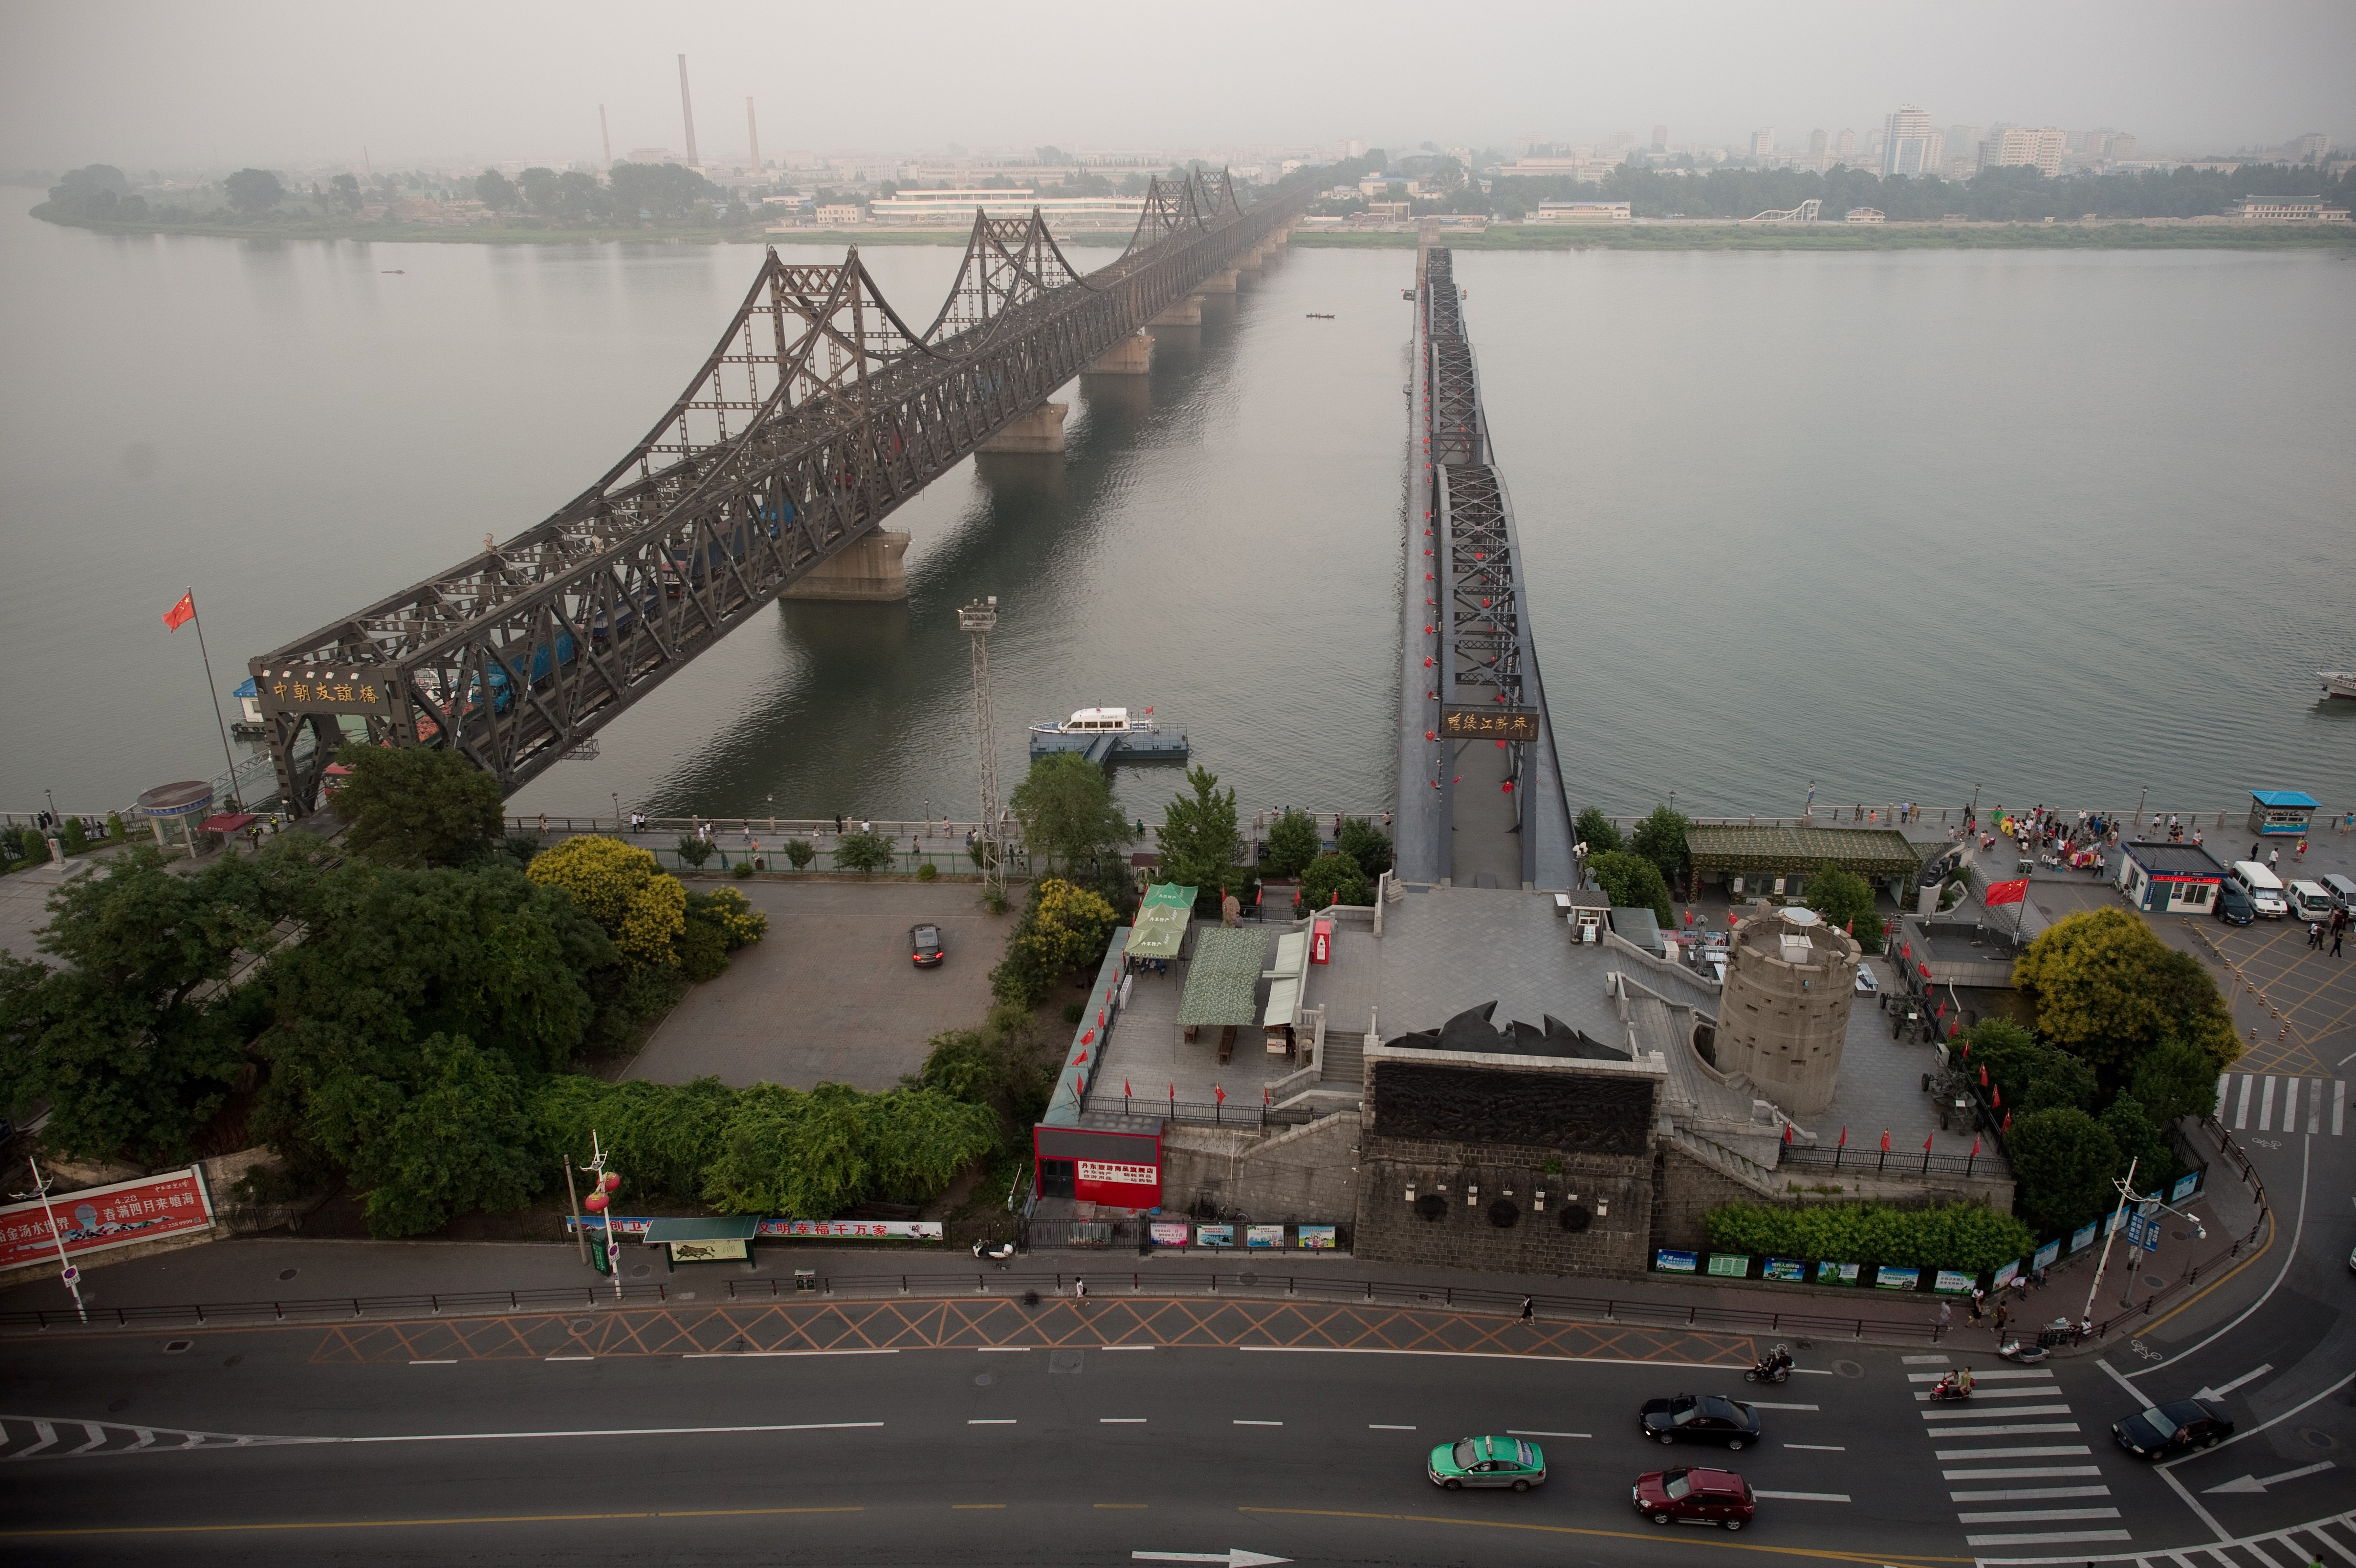 Bridges connecting the Chinese city of Dandong and the North Korean city of Sinuiju on July 5.  (NICOLAS ASFOURI/AFP/Getty Images)